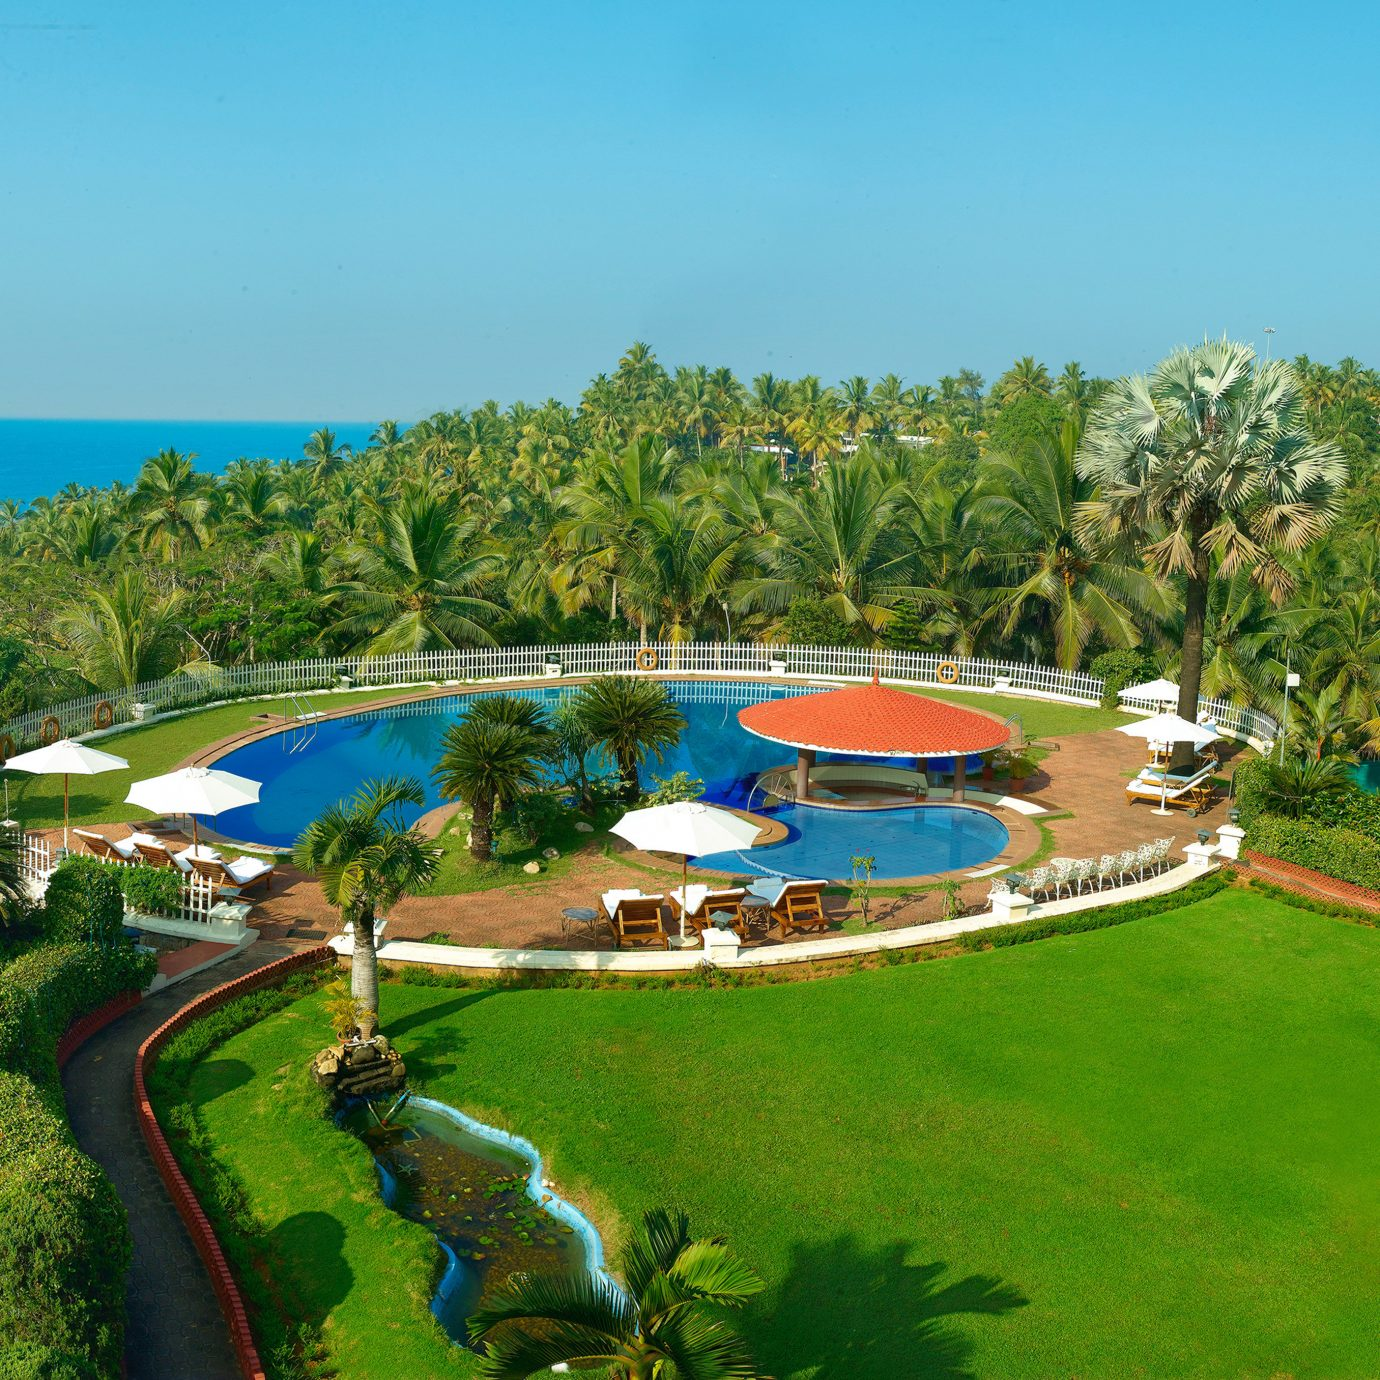 Grounds Outdoors Play Pool Resort grass tree sky leisure structure property Nature swimming pool sport venue lawn golf course aerial photography mansion park shore